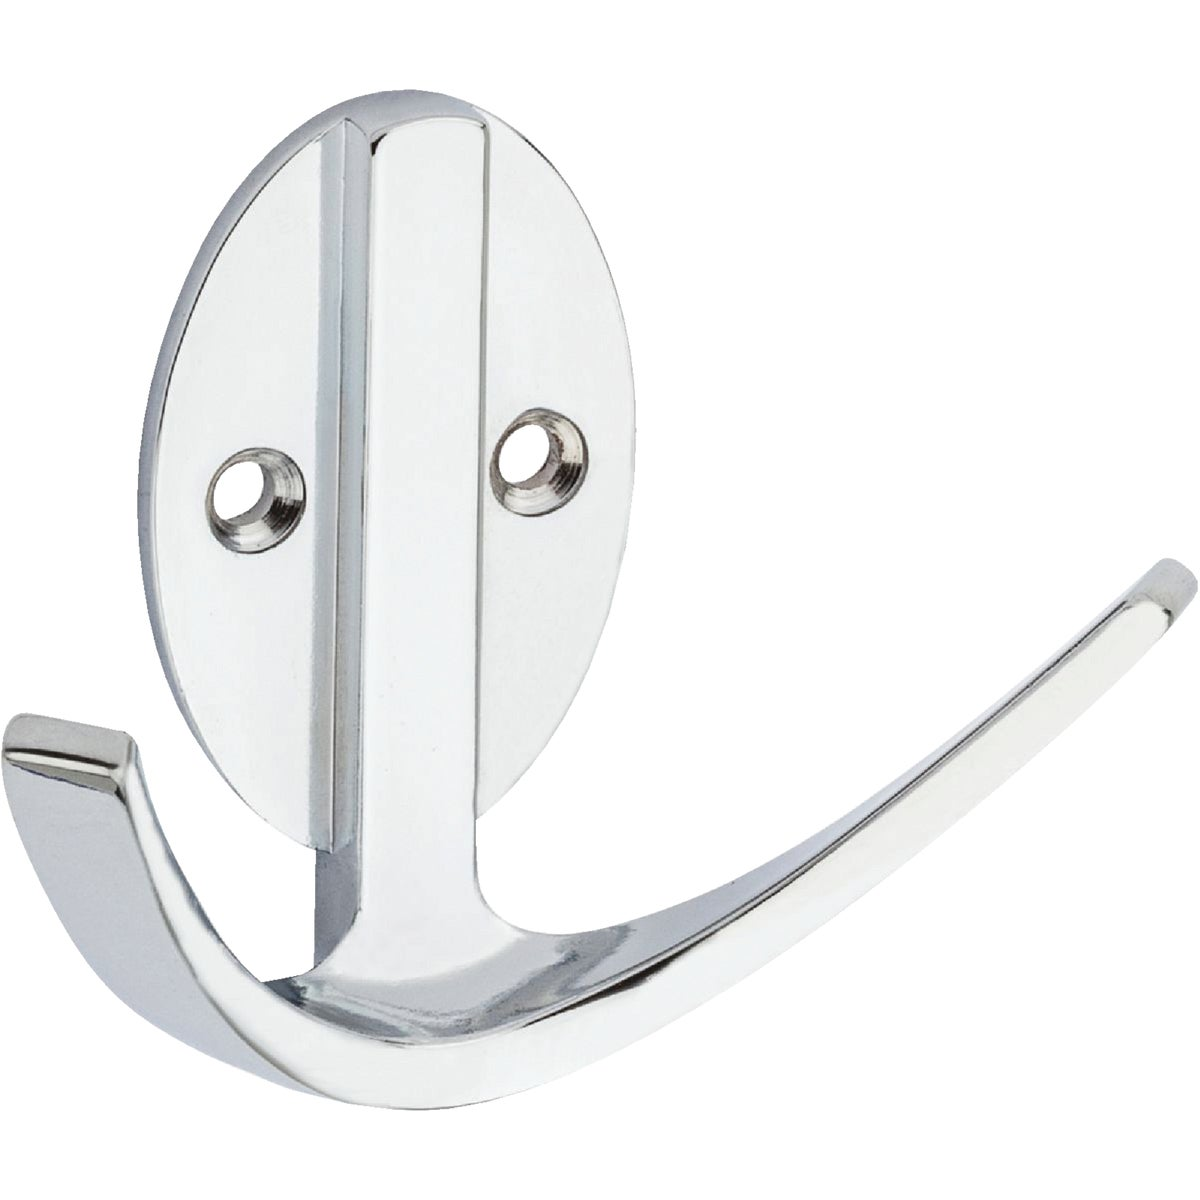 "3"" CHR DOUBLE ROBE HOOK"